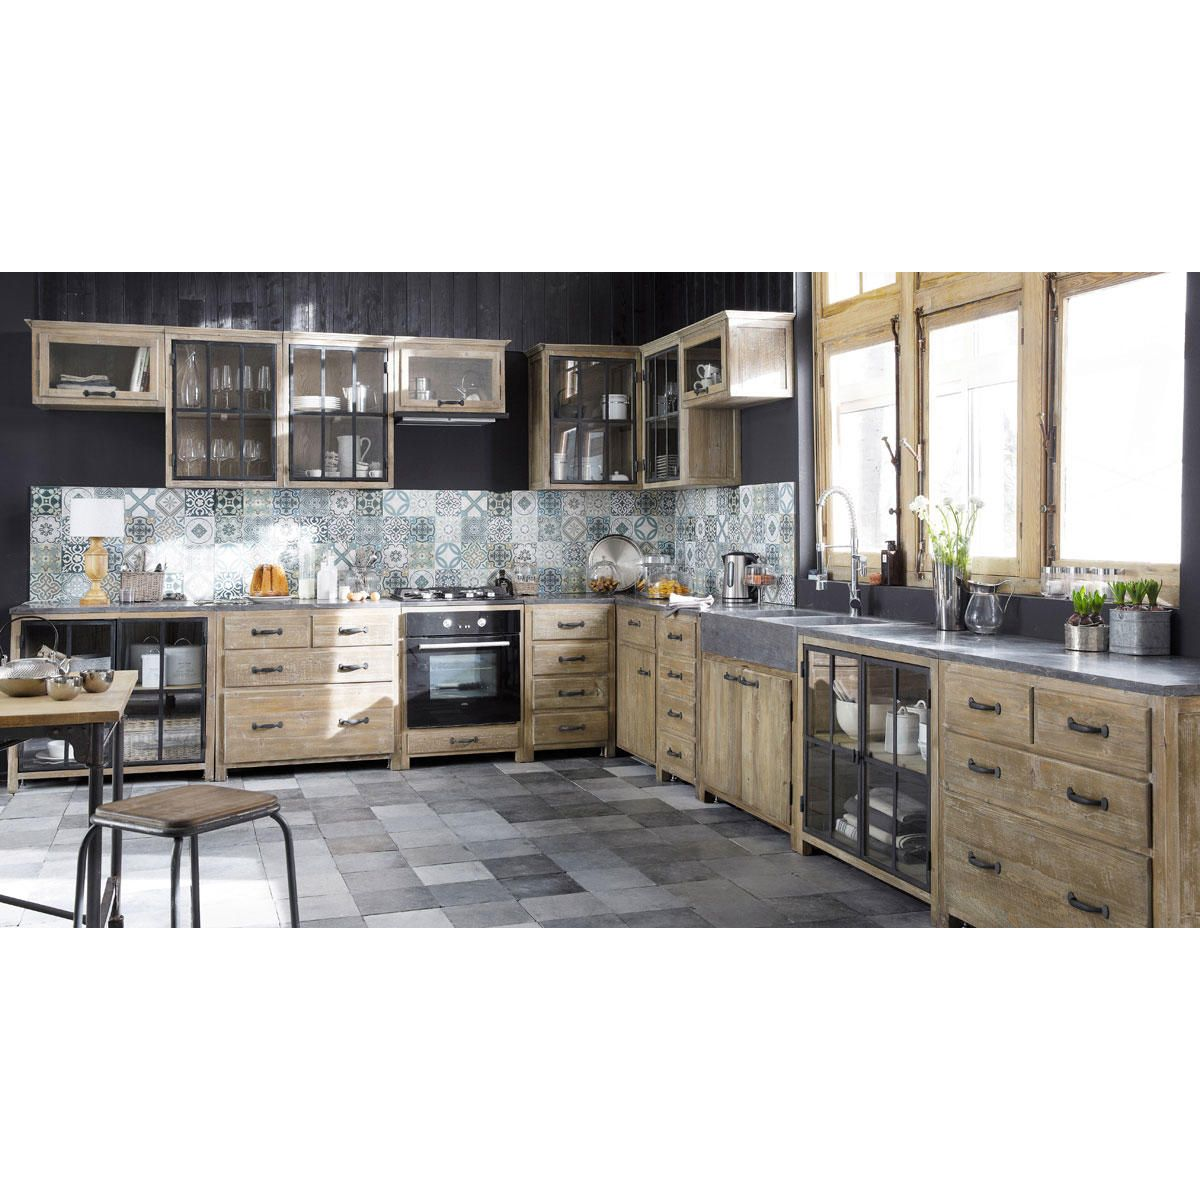 meuble bas de cuisine en pin recycl l120 meuble bas de cuisine meuble bas et cuisine en bois. Black Bedroom Furniture Sets. Home Design Ideas